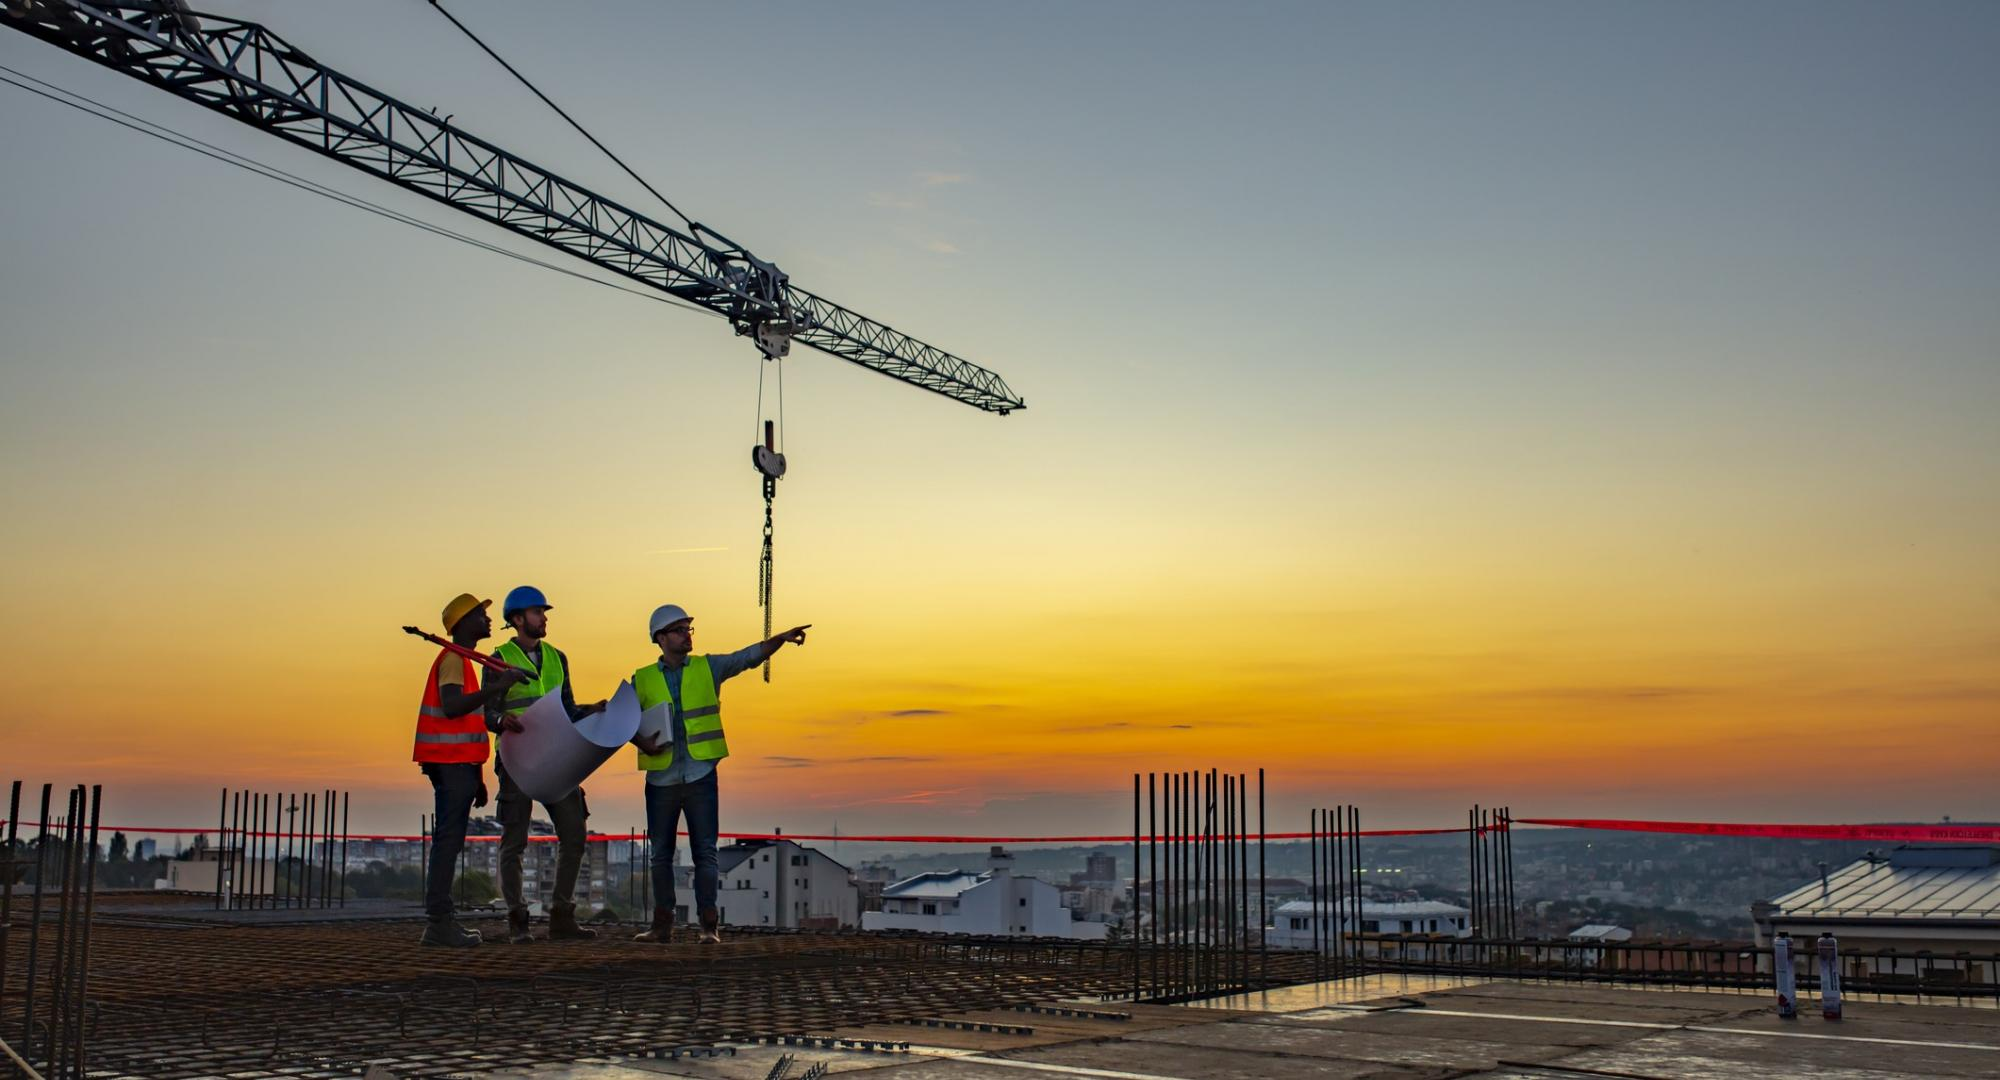 Construction workers stood atop a construction site